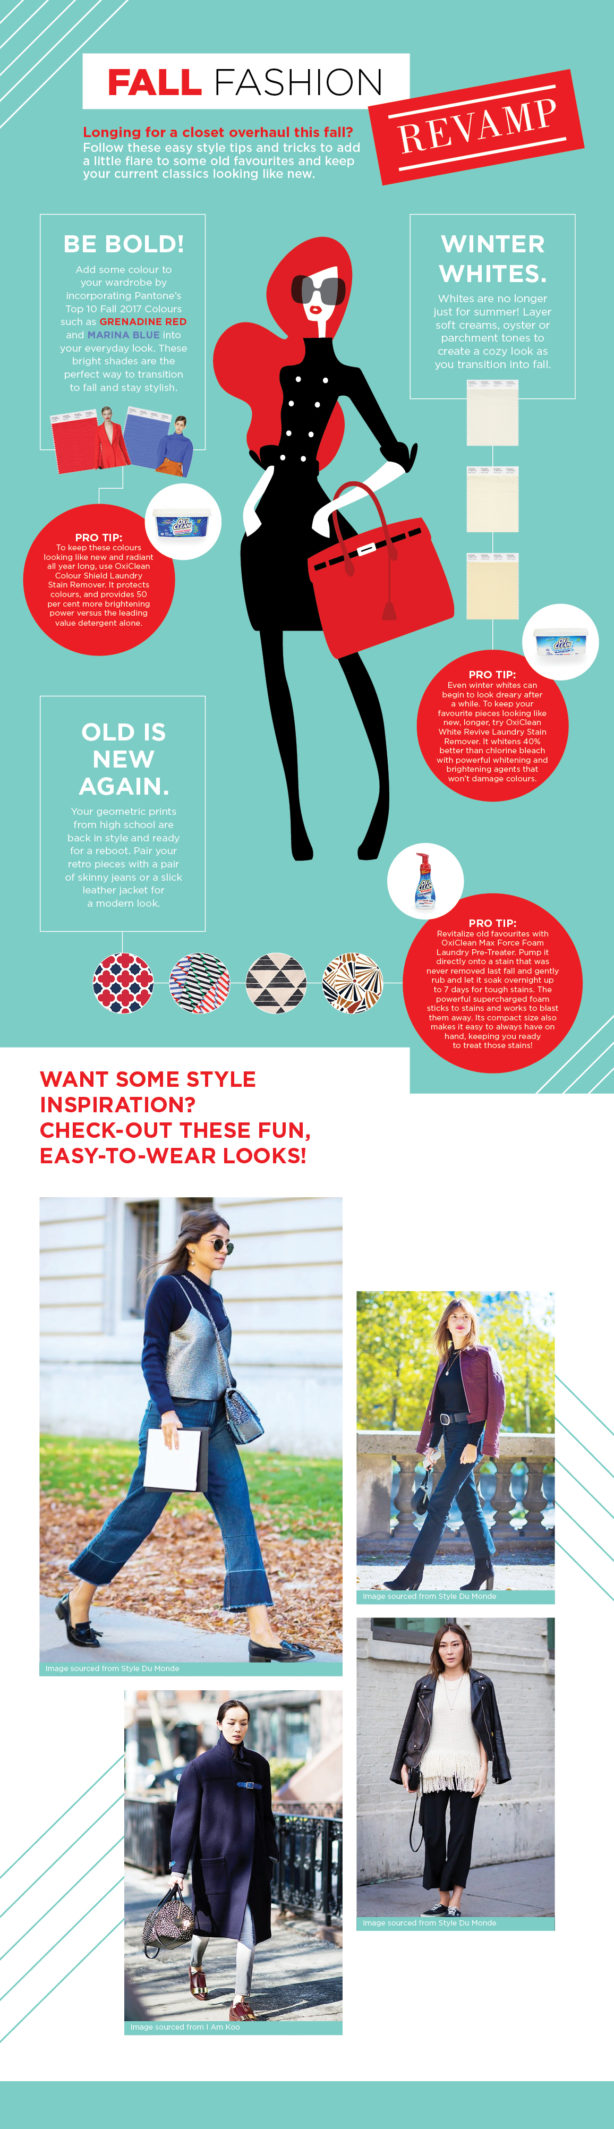 A Fall Fashion infographic with tips and outfit styles to revamp your fall fashion.